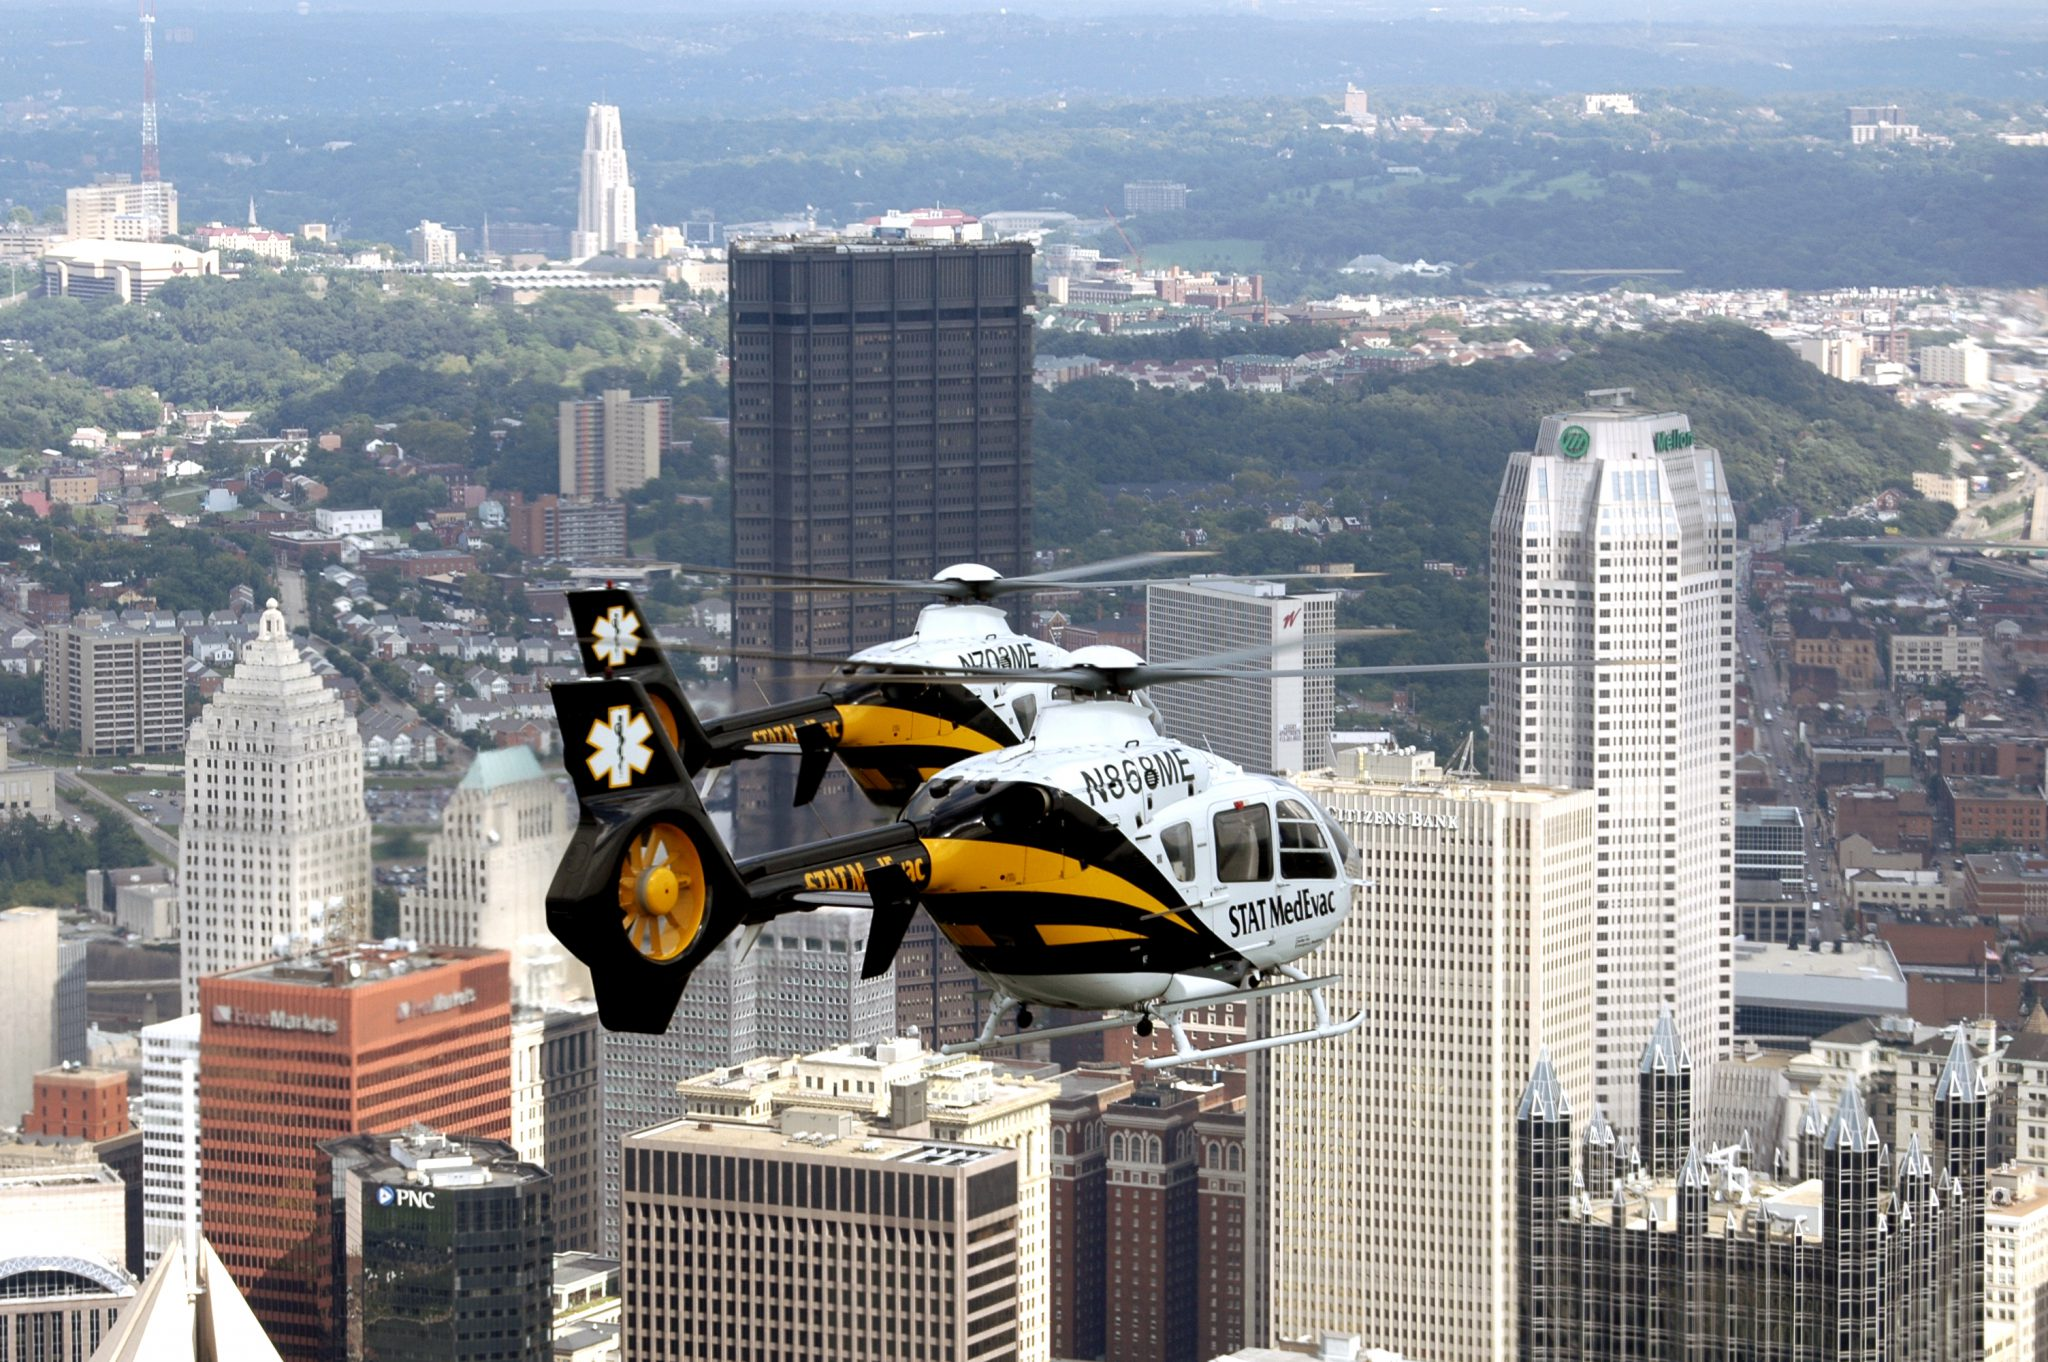 Helicopter over Pittsburh